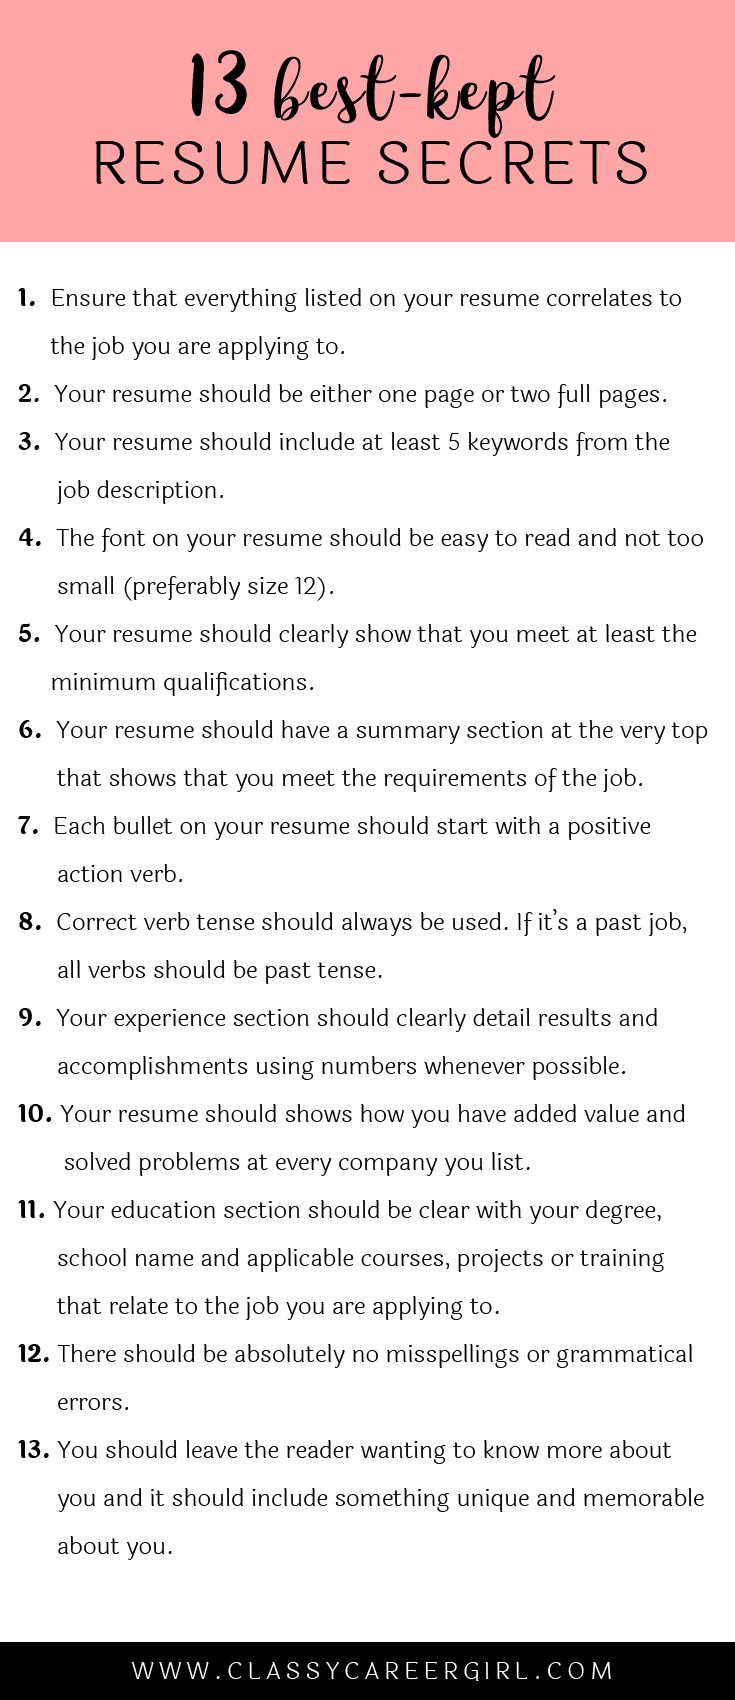 Opposenewapstandardsus  Fascinating  Ideas About Resume On Pinterest  Cv Format Resume Cv And  With Fascinating Some Hiring Managers Will Toss Your Resume Out If You Dont Know These  With Breathtaking Director Of It Resume Also Professional Teacher Resume In Addition Premed Resume And Best Online Resume As Well As What To Look For In A Resume Additionally Optometrist Resume From Pinterestcom With Opposenewapstandardsus  Fascinating  Ideas About Resume On Pinterest  Cv Format Resume Cv And  With Breathtaking Some Hiring Managers Will Toss Your Resume Out If You Dont Know These  And Fascinating Director Of It Resume Also Professional Teacher Resume In Addition Premed Resume From Pinterestcom